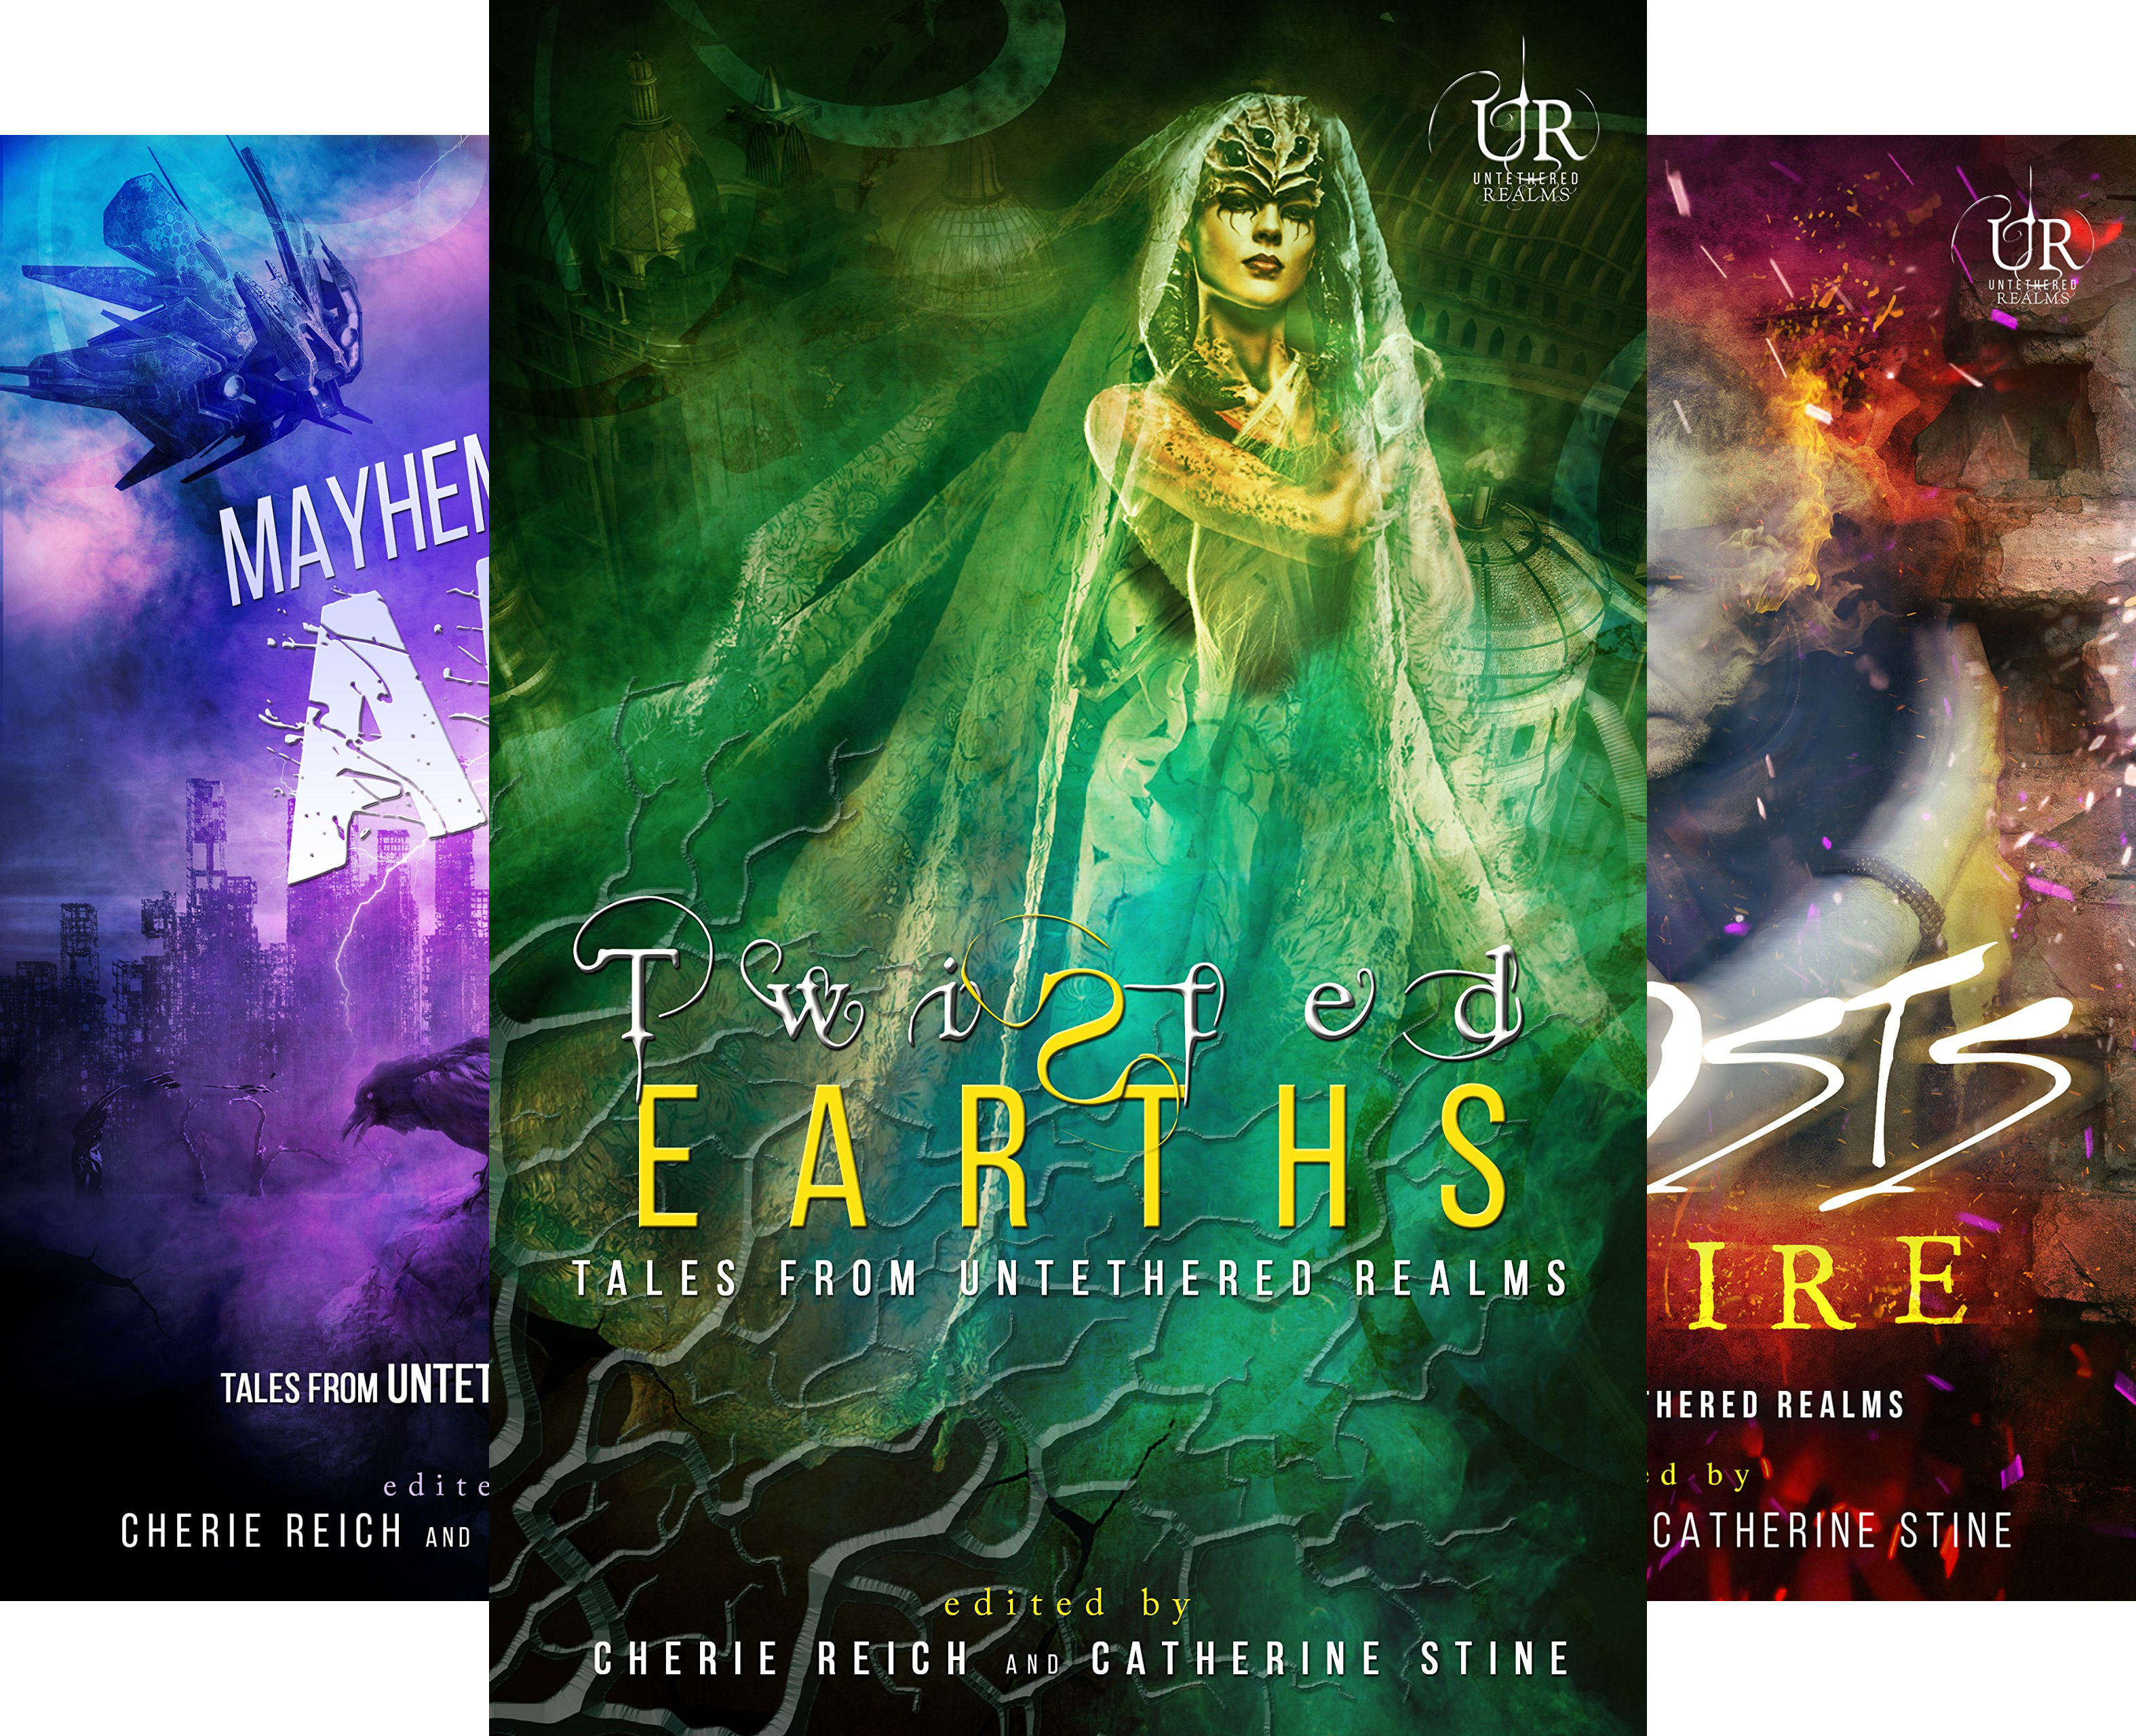 Elements of Untethered Realms (4 Book Series)